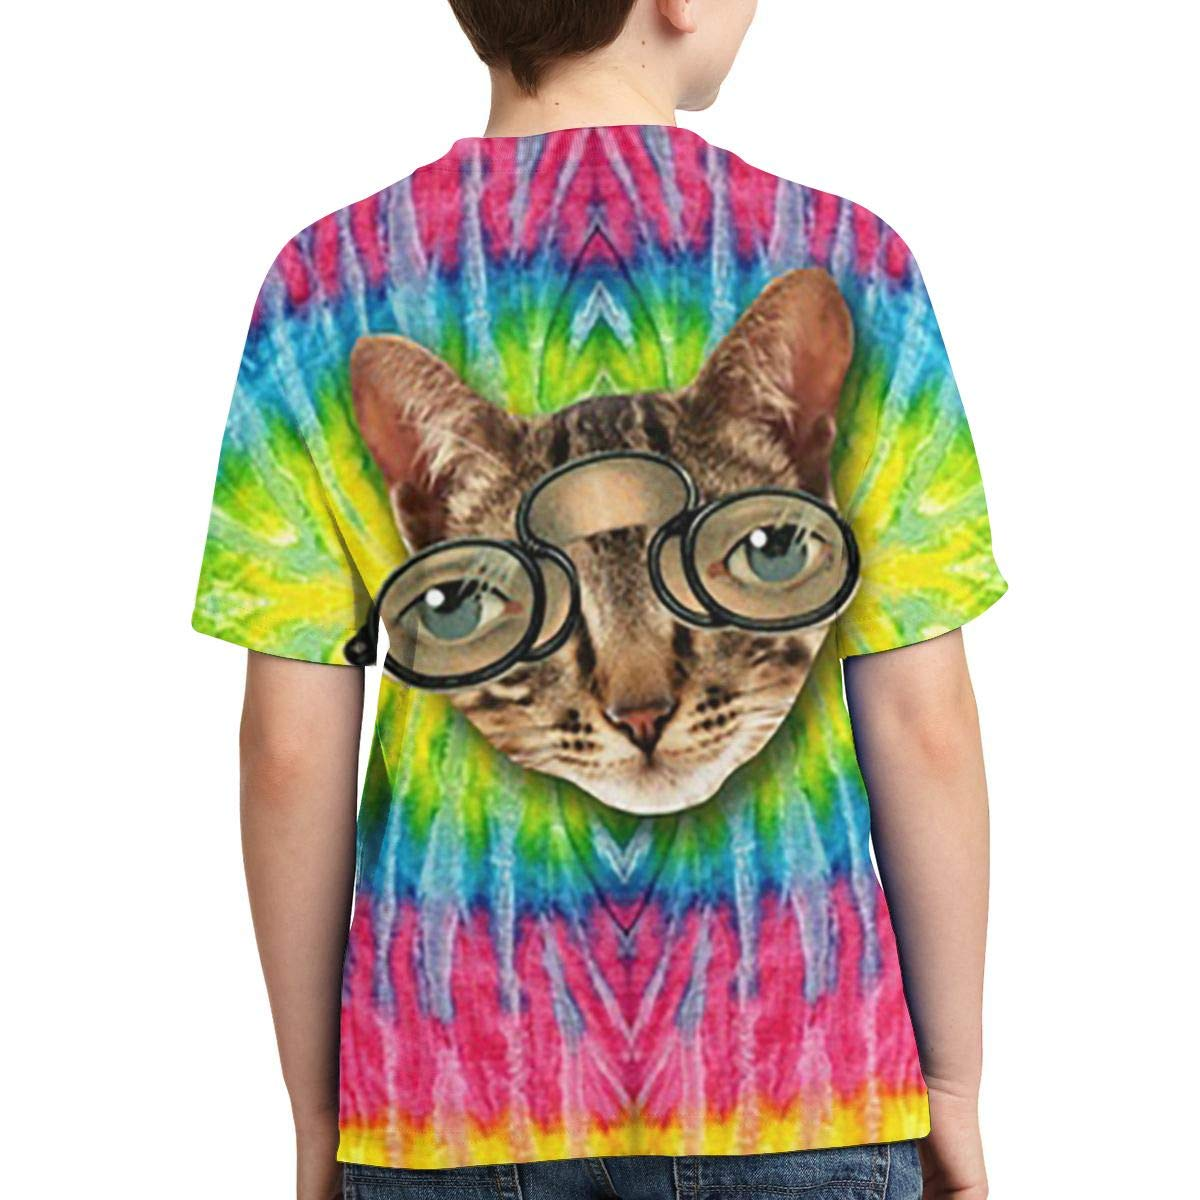 BIAN-64 Youth Tie Dye Cat Casual 3D Pattern Printed Short Sleeve T-Shirts Top Tees